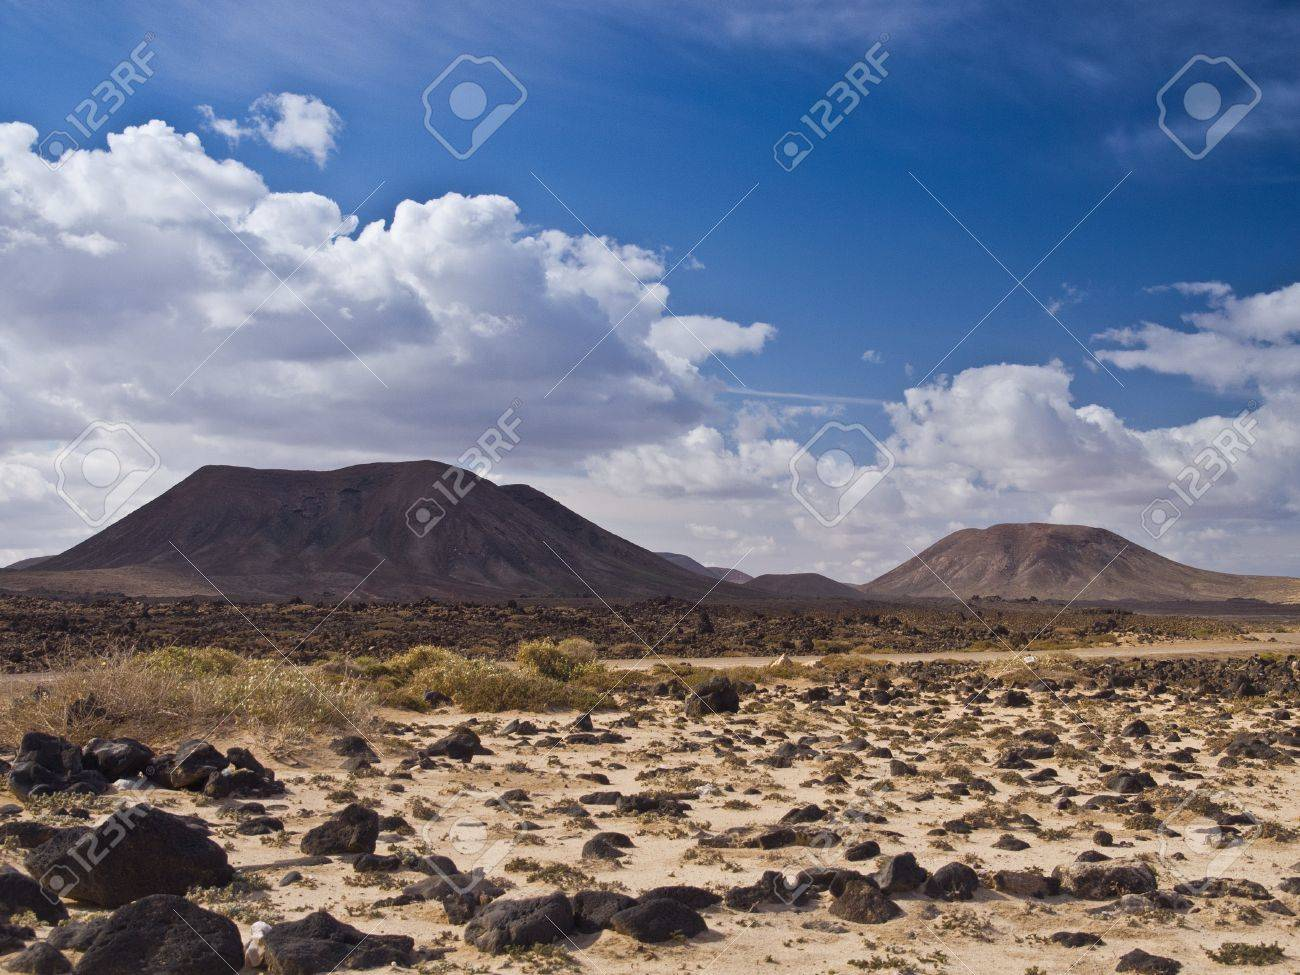 Stony desert and volcanic hills under dramatical cloudy sky Stock Photo - 9688228